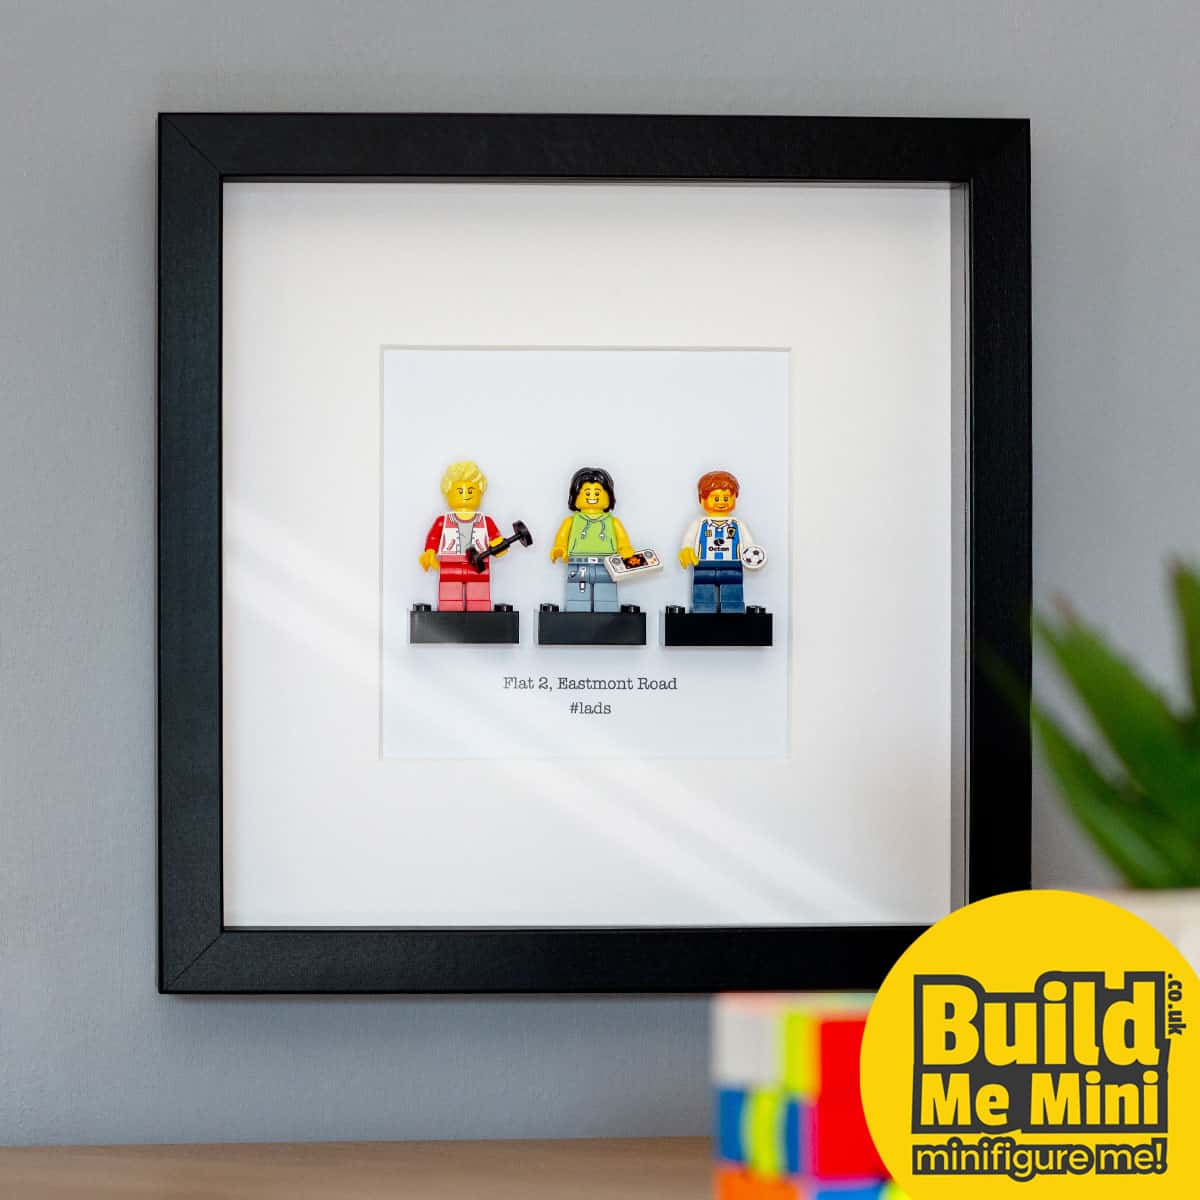 Framed Personalised Minifigures made from LEGO® parts (Triple)